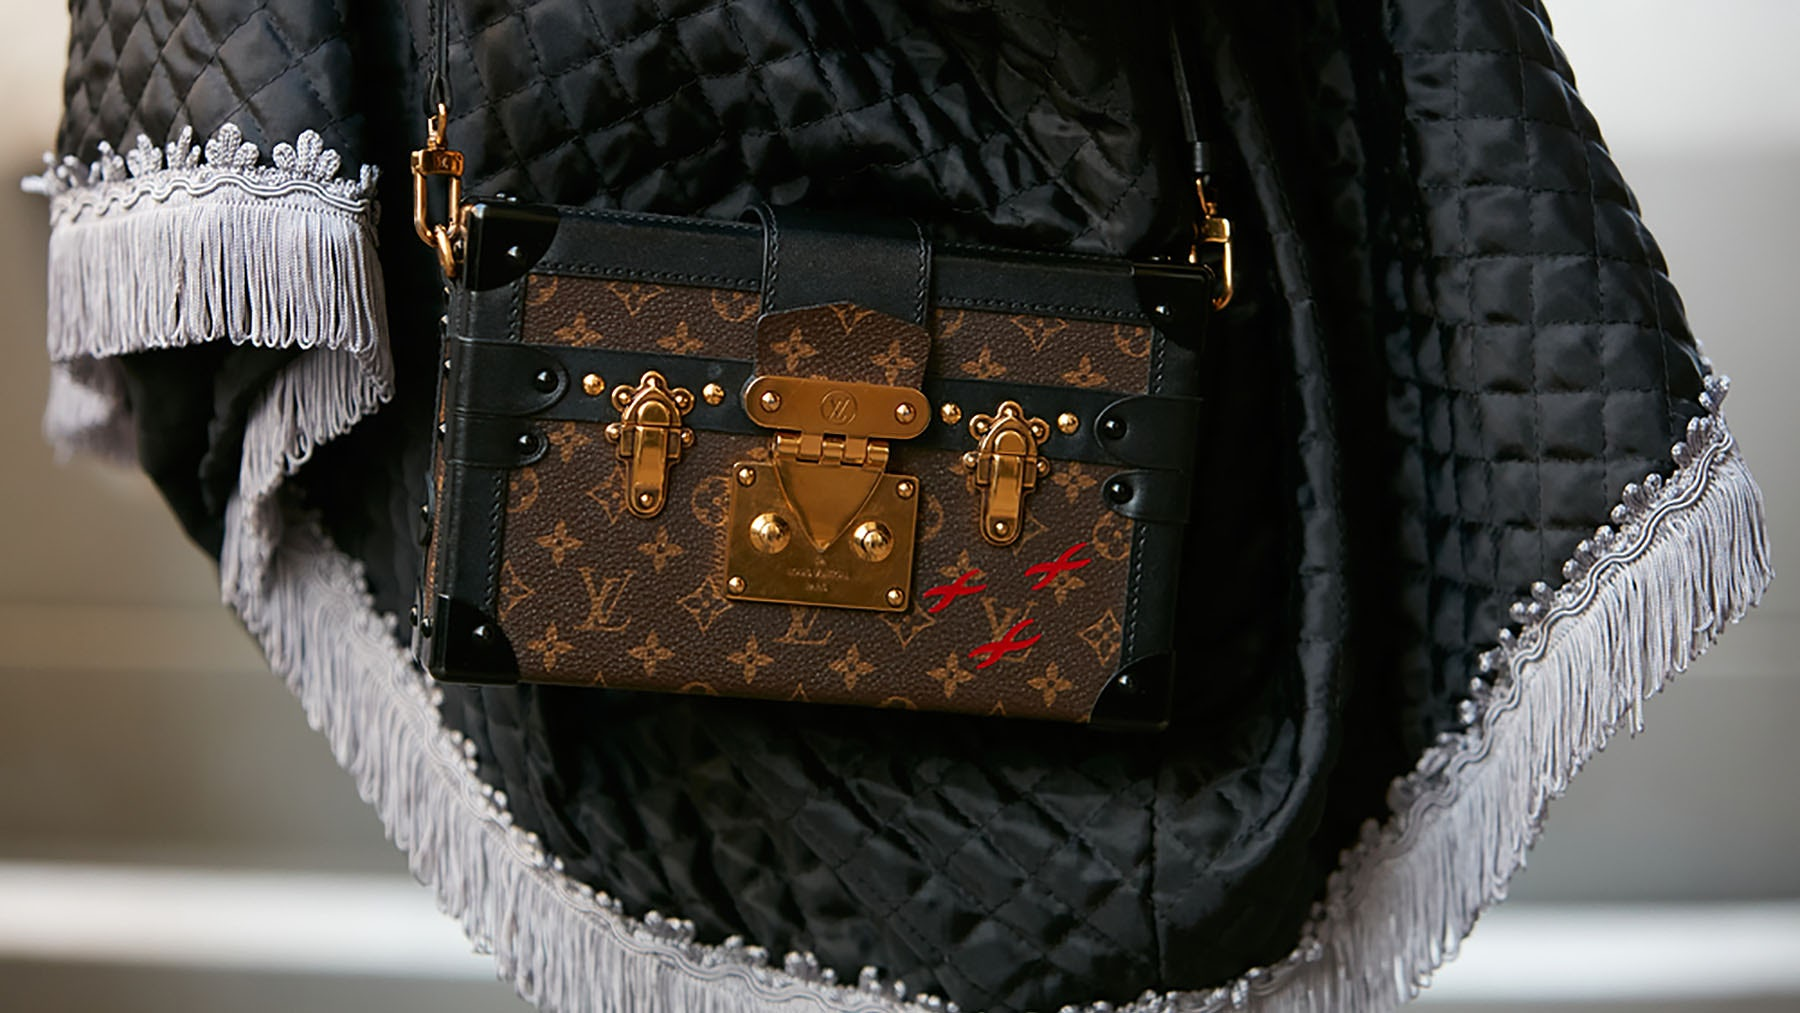 Louis Vuitton 'Petite Malle' bag | Source: Shutterstock